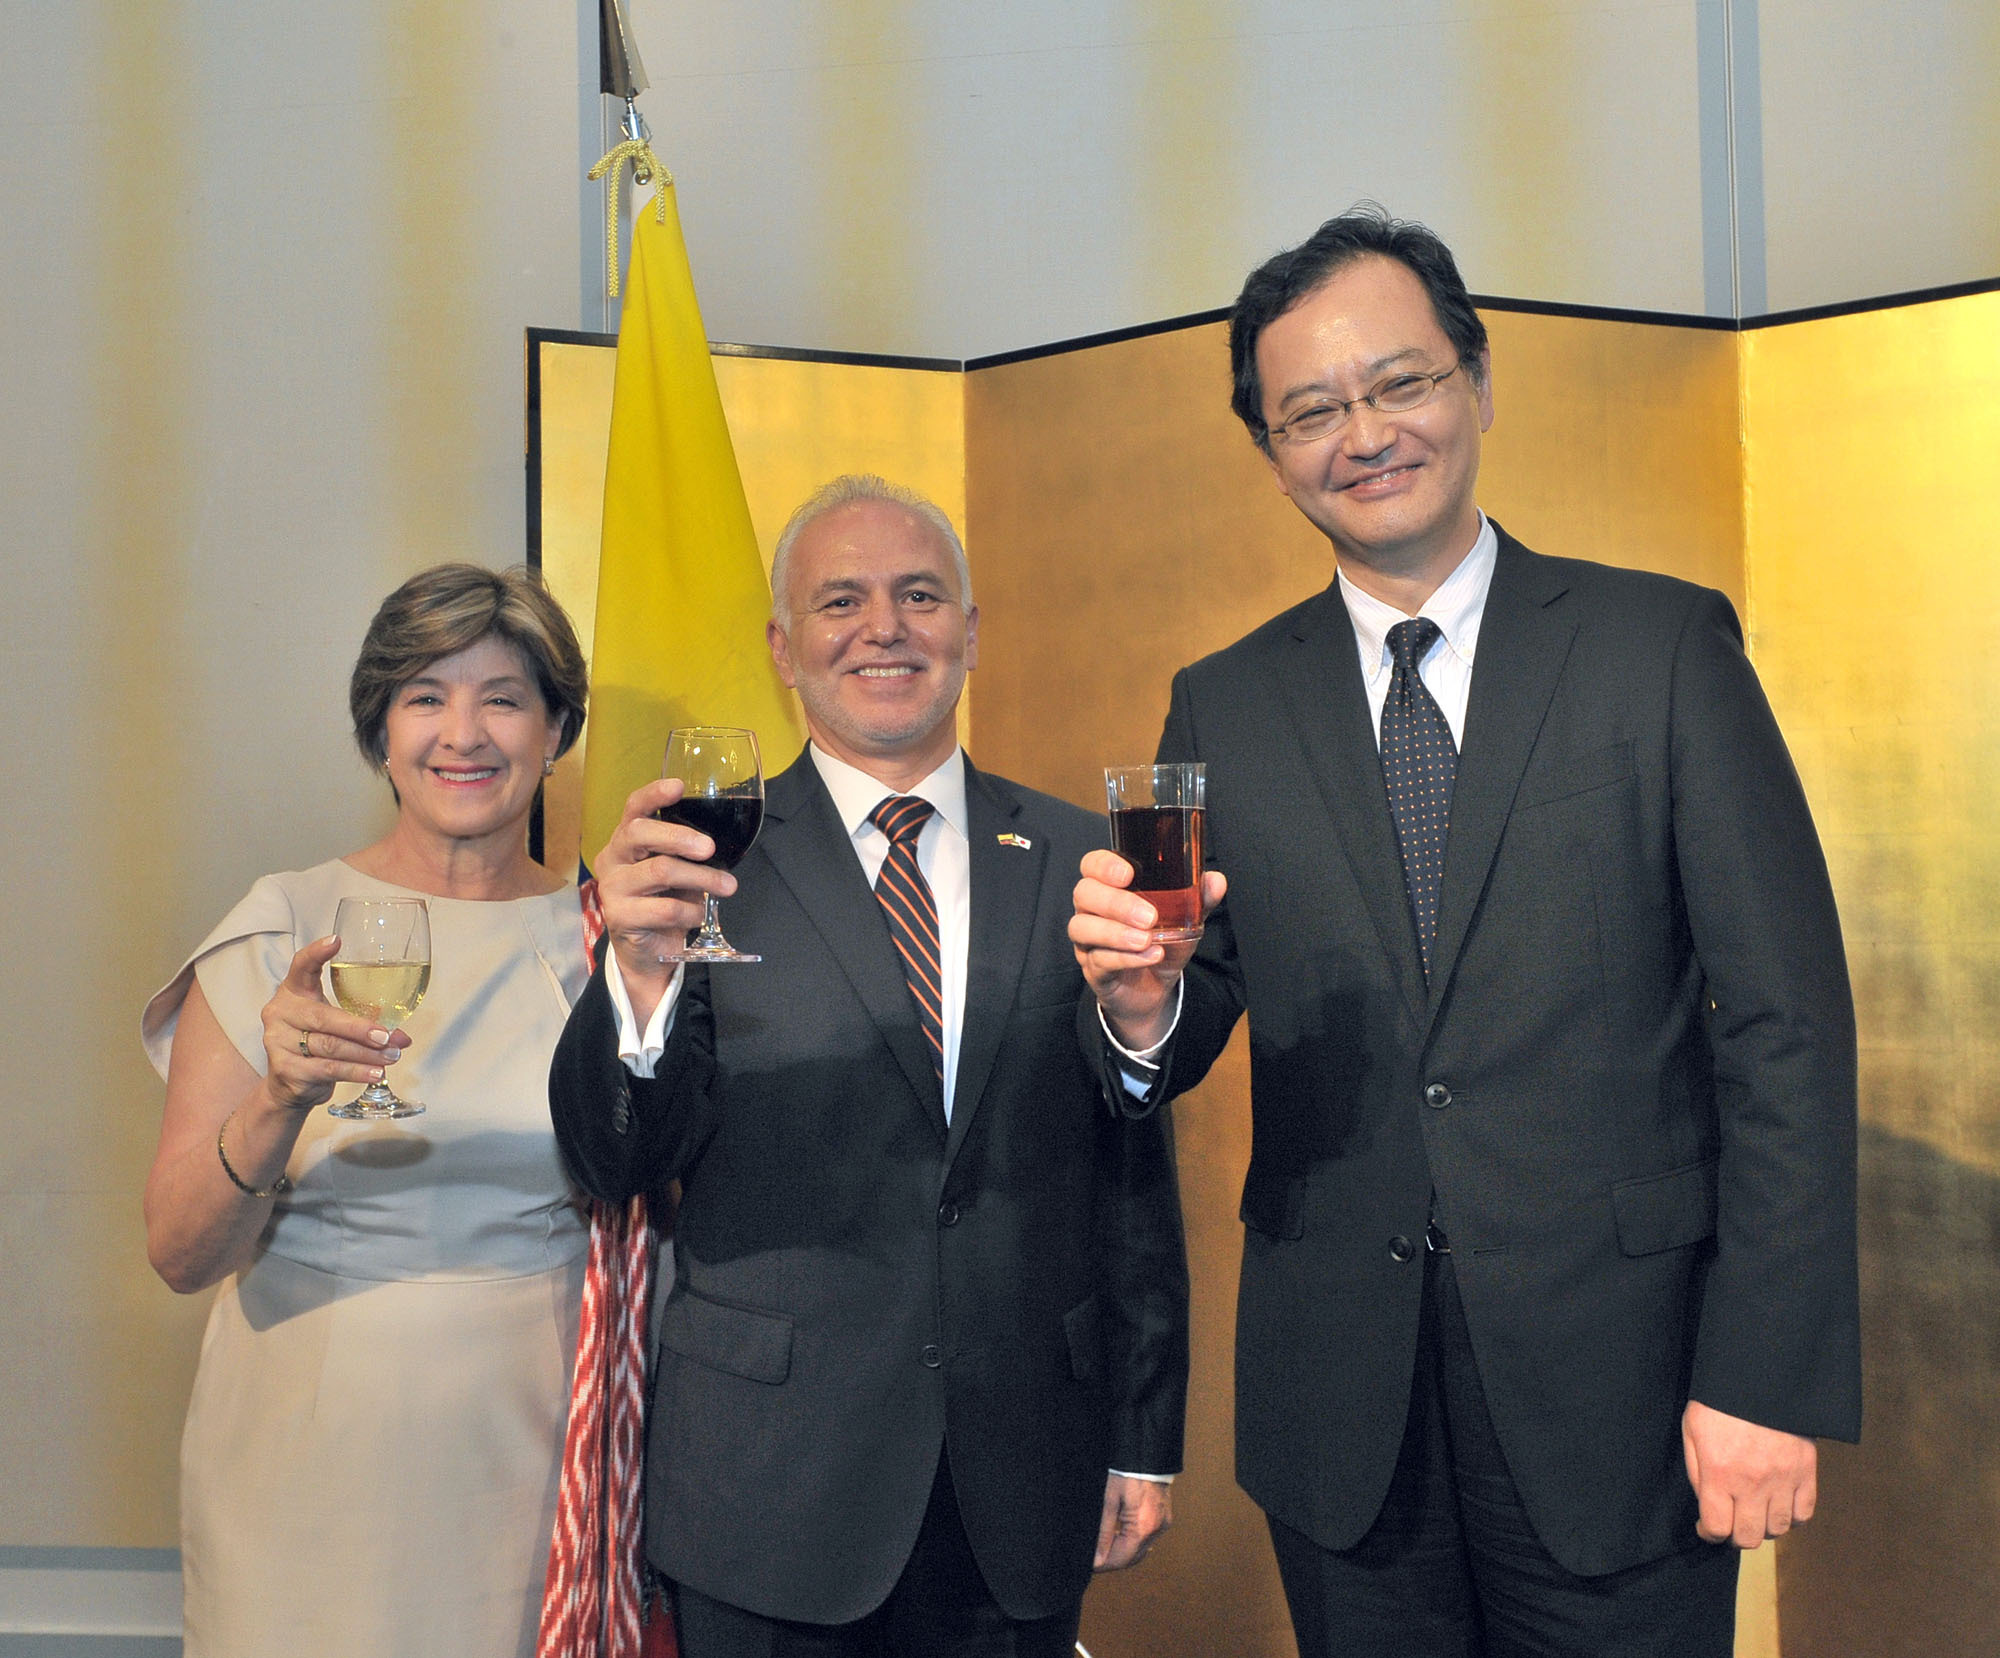 Ecuadorian Ambassador Jaime Barberis (center) and his wife, Maria, celebrate Ecuador's independence day with Takahiro Nakamae, director-general of the Foreign Ministry's Latin American and Caribbean Affairs Bureau, during a reception at Hotel New Otani in Tokyo on Aug. 10. |  YOSHIAKI MIURA